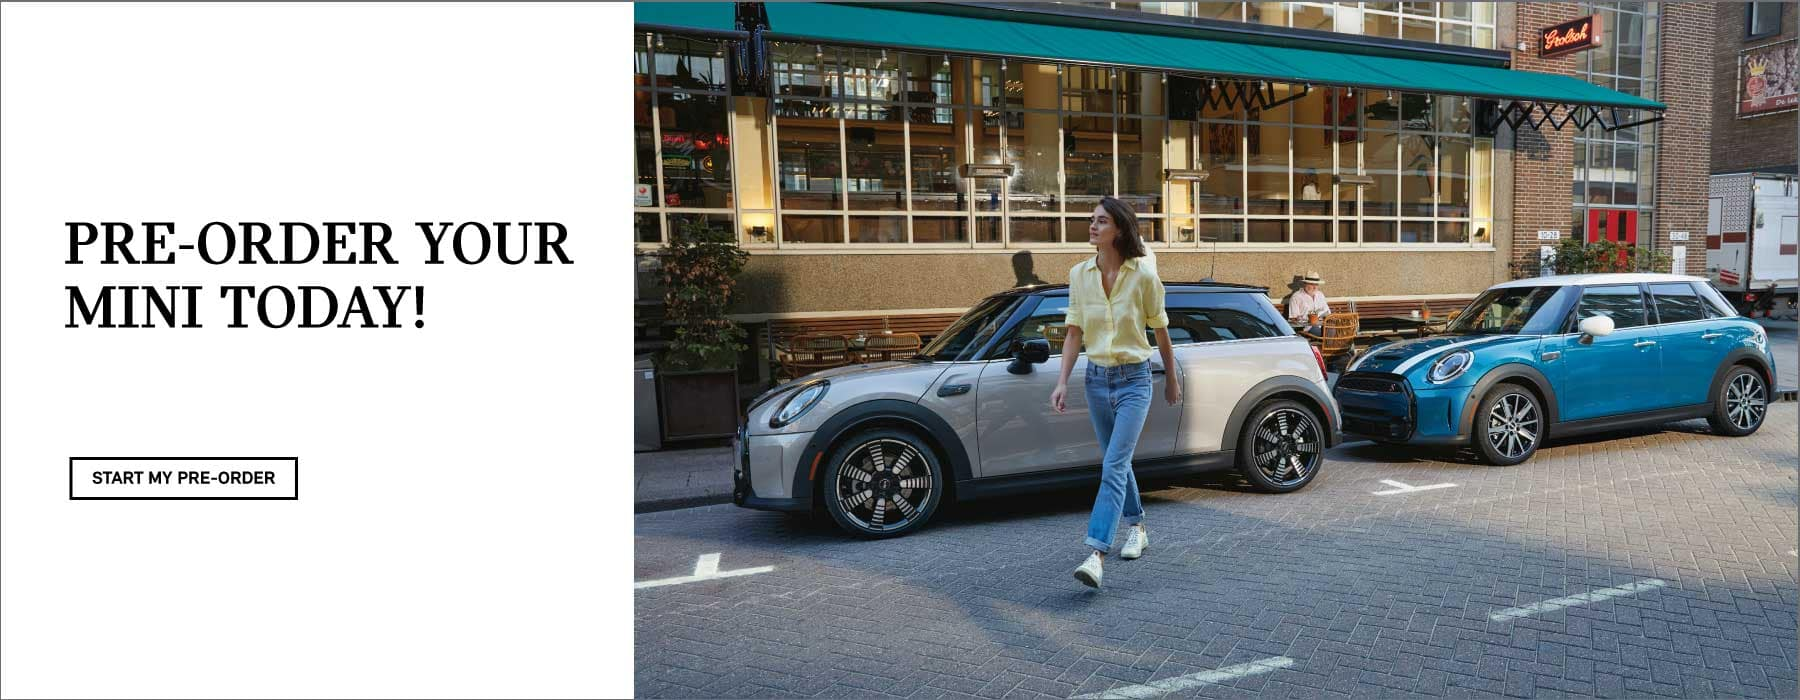 pre-order your MINI today. Click to start your pre-order. Image shows a woman walking in front of two 2022 MINI vehicles parked on the street.